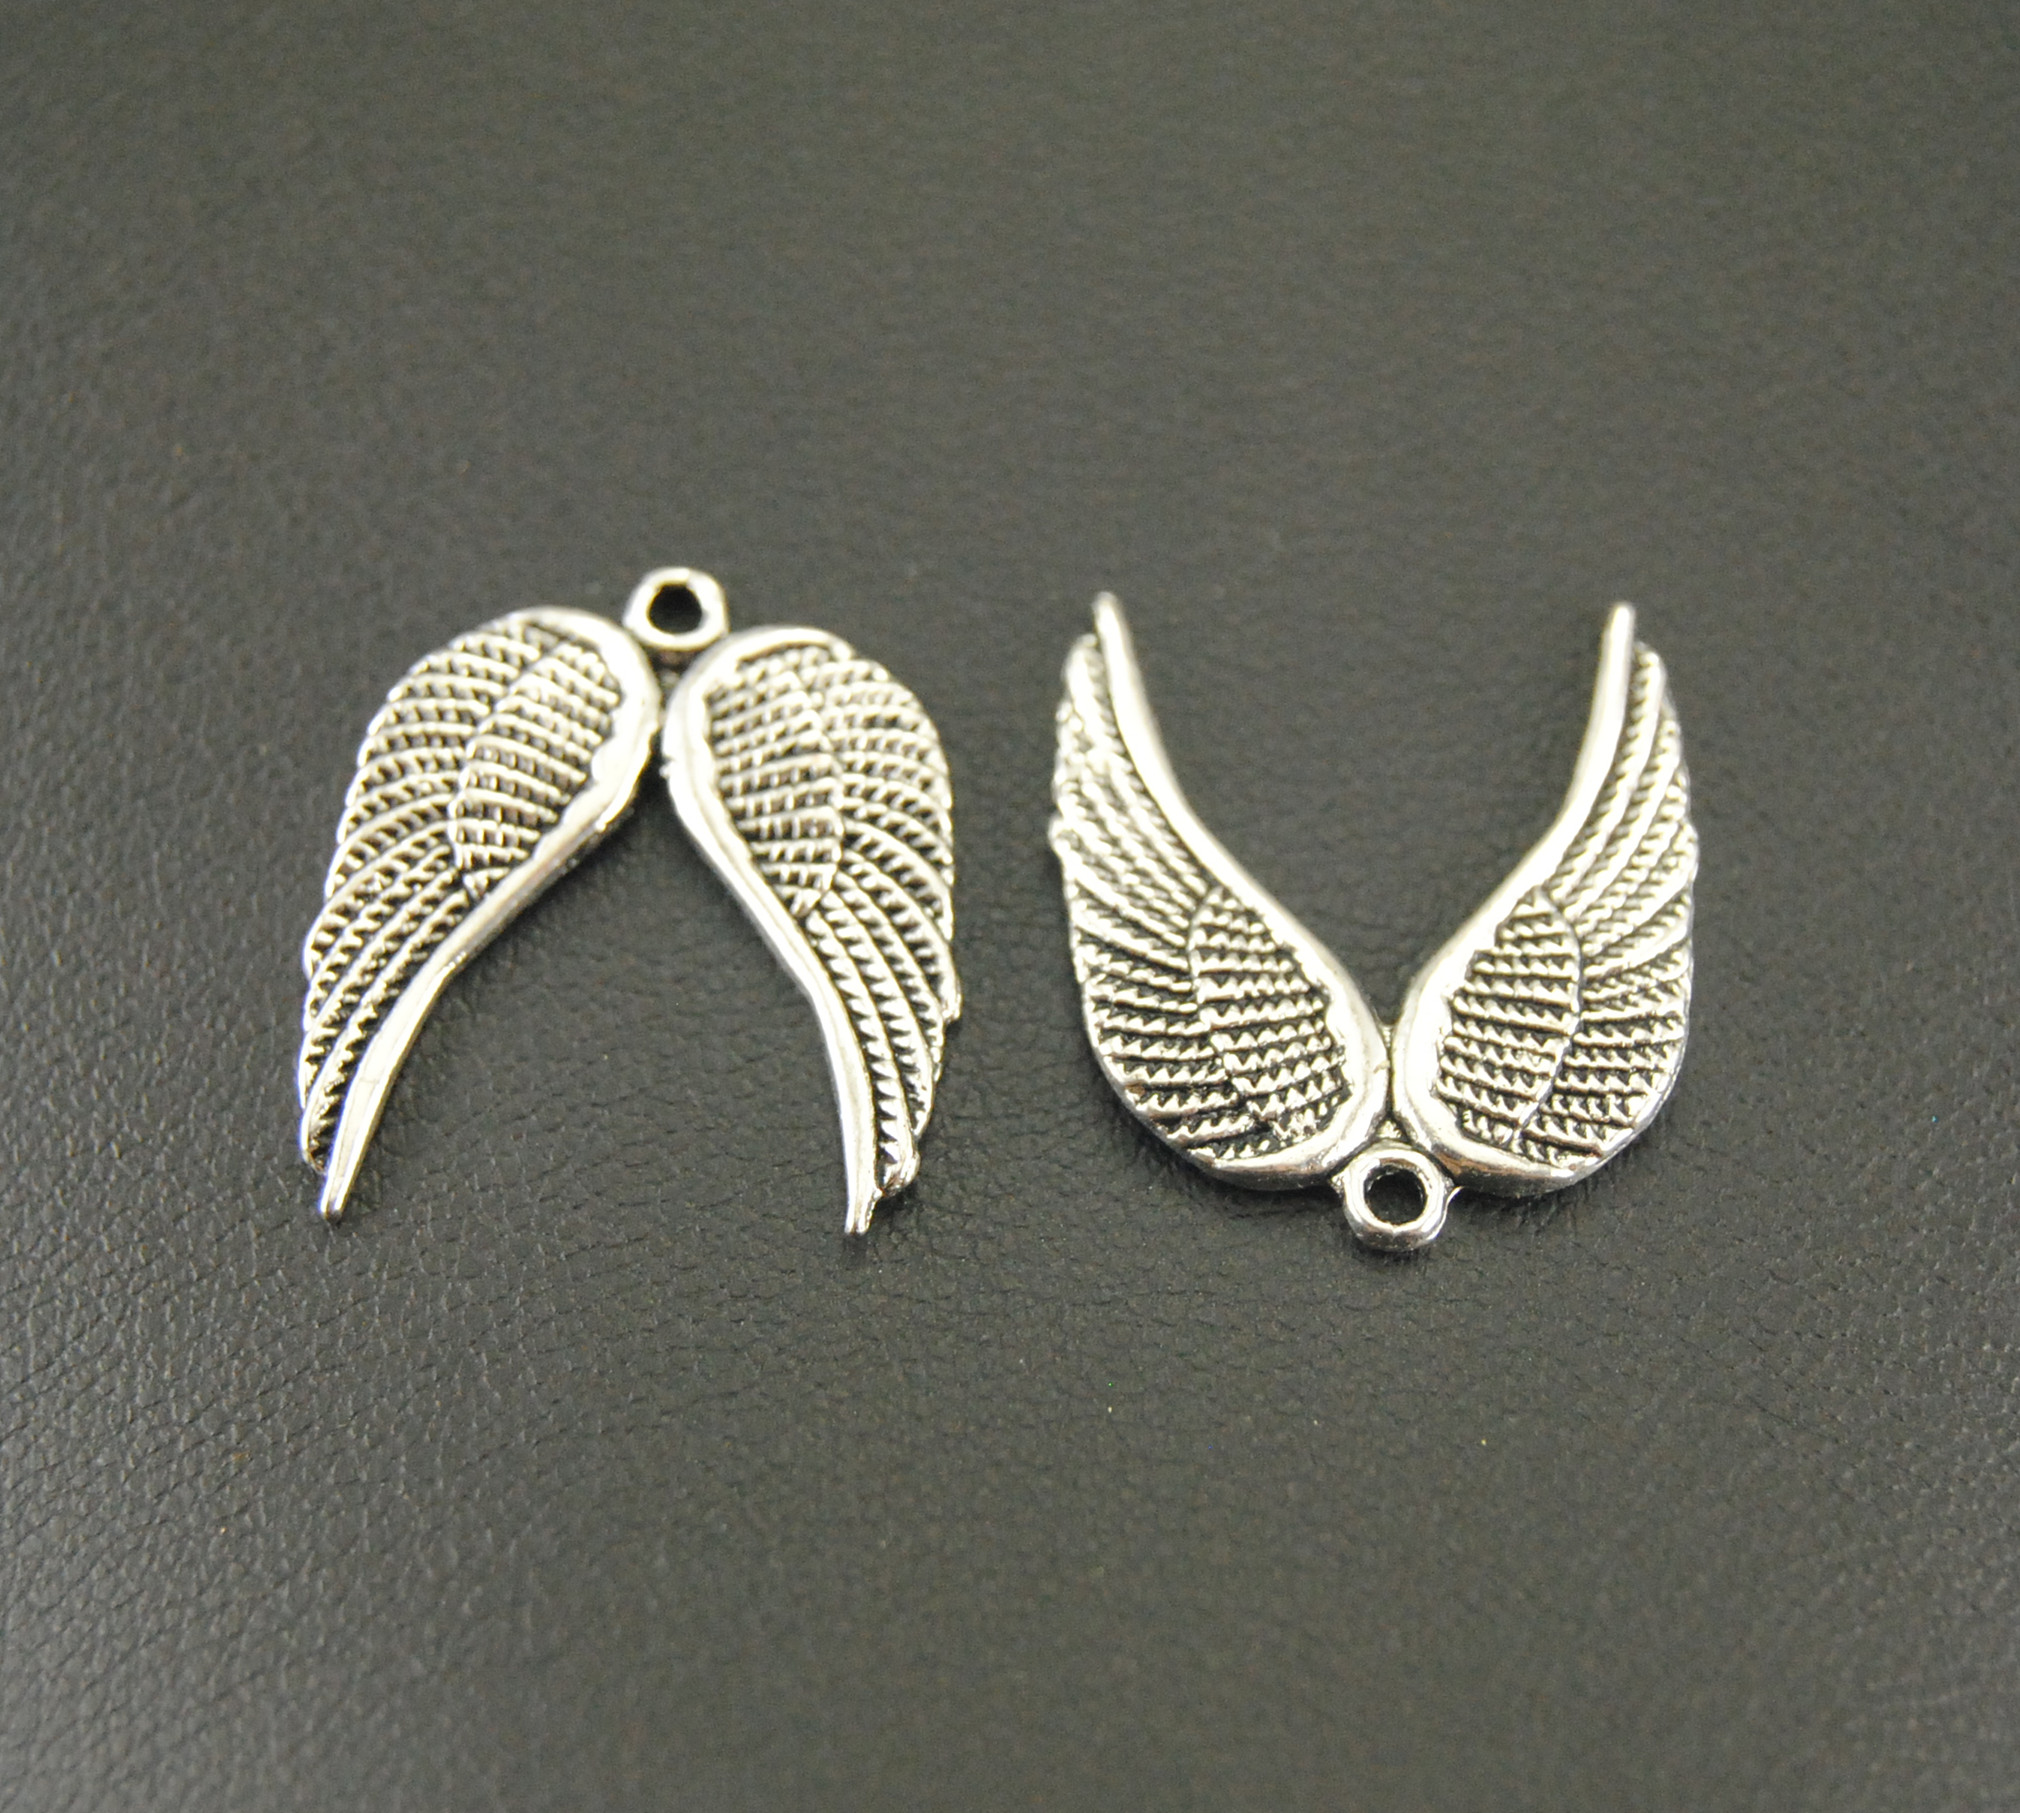 Free Ship 20pcs Tibetan Silver Angel Pendants Charms For Jewelry Making 20x16mm